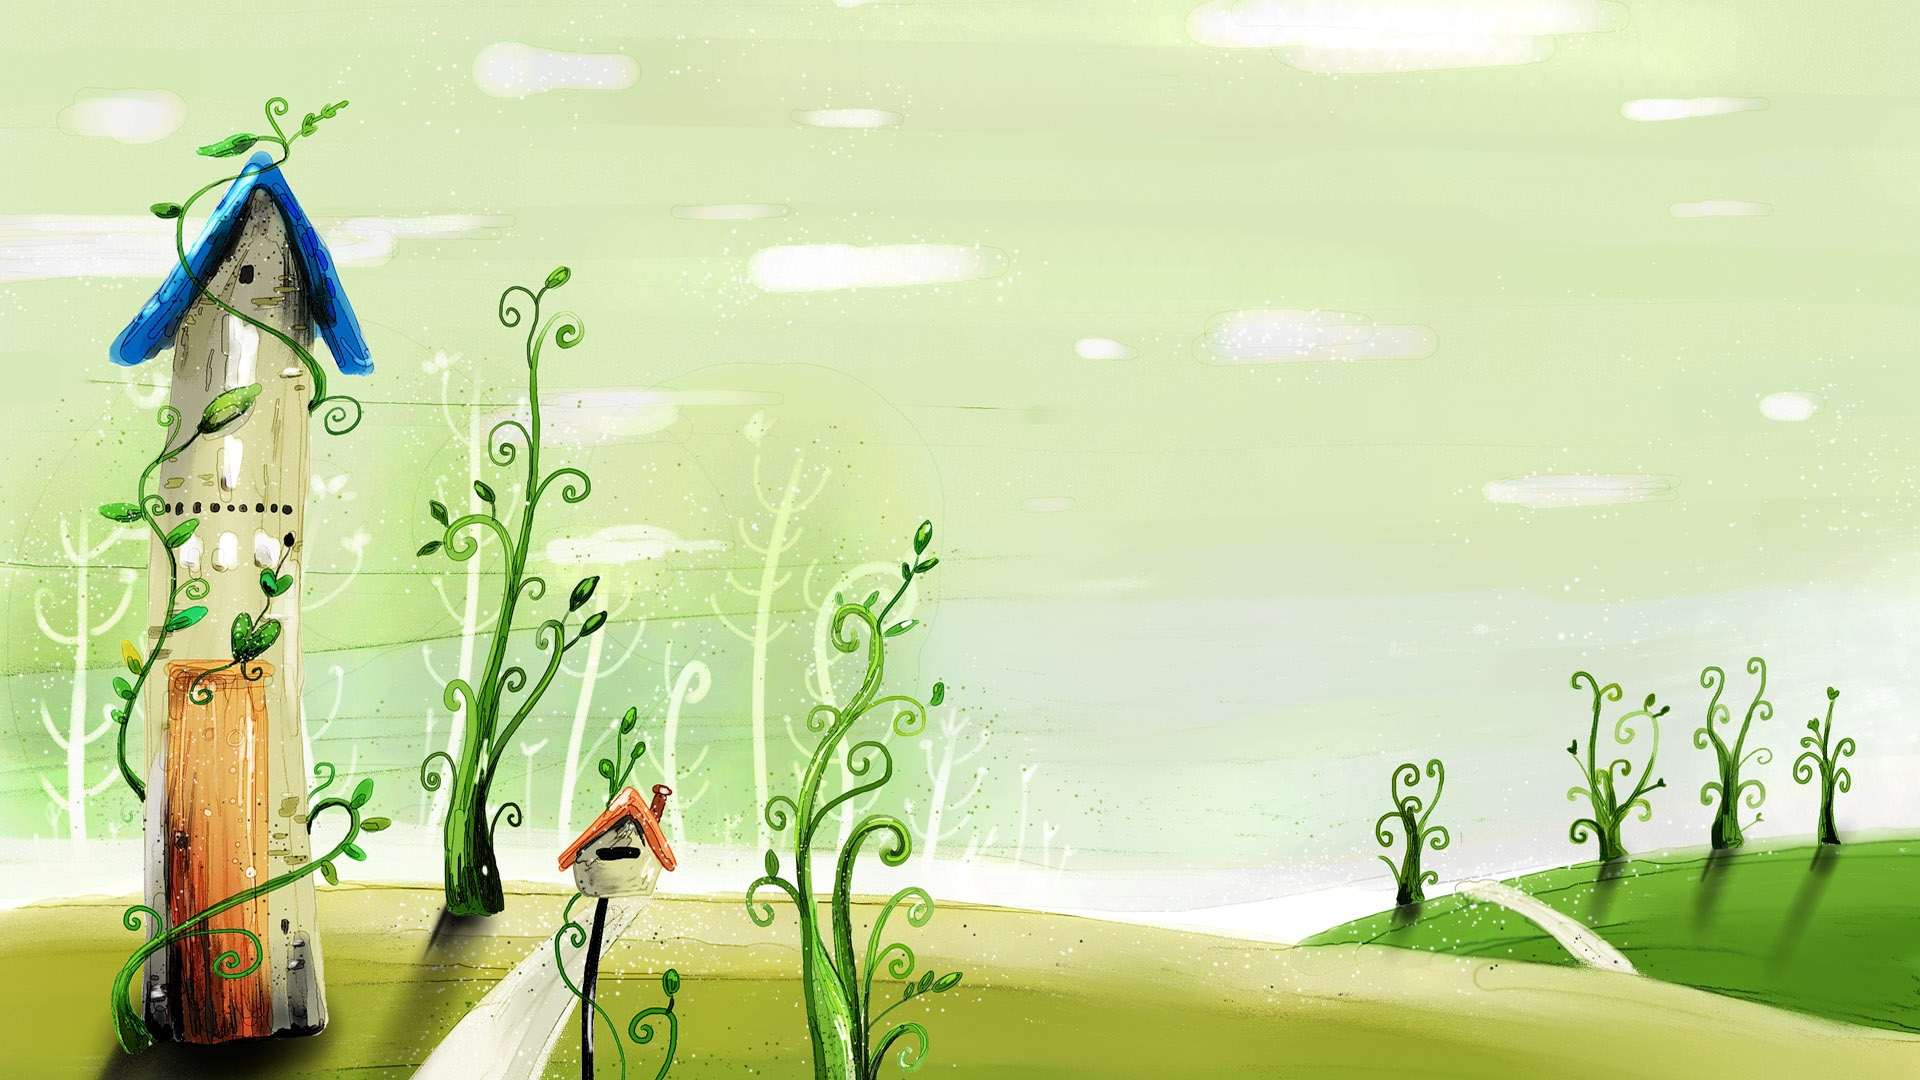 Download Wallpaper 1920x1080 Spring Drawing Cartoon Building Grass Full Hd 1080p Hd Background